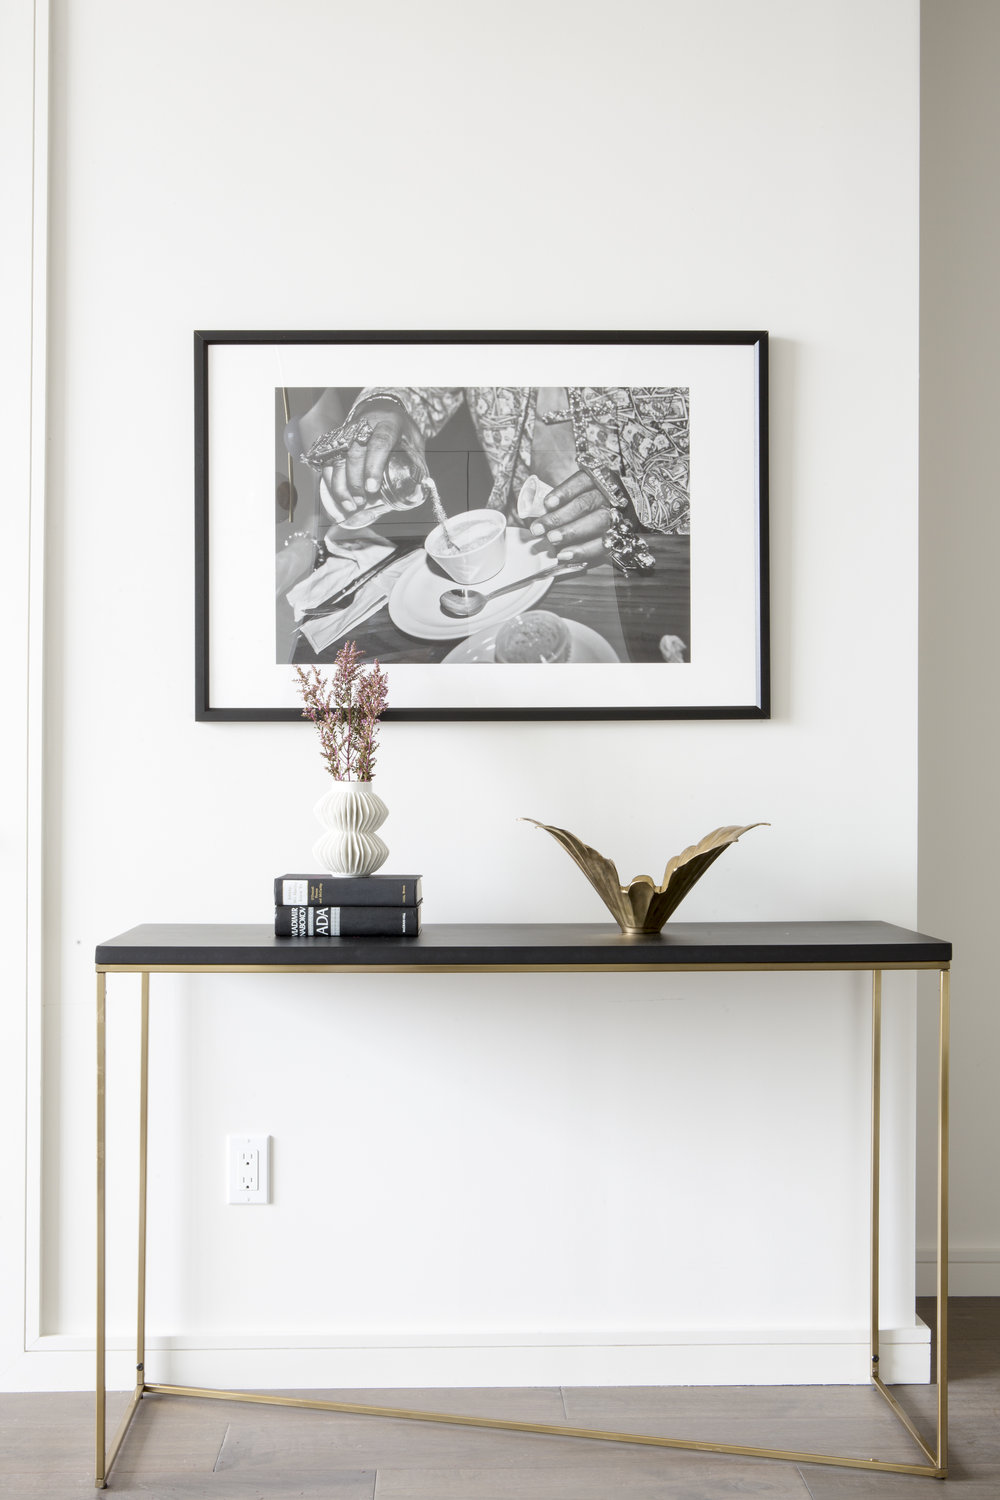 Interior Design by Christina Higham and Rachael Gargiulo for Sonder